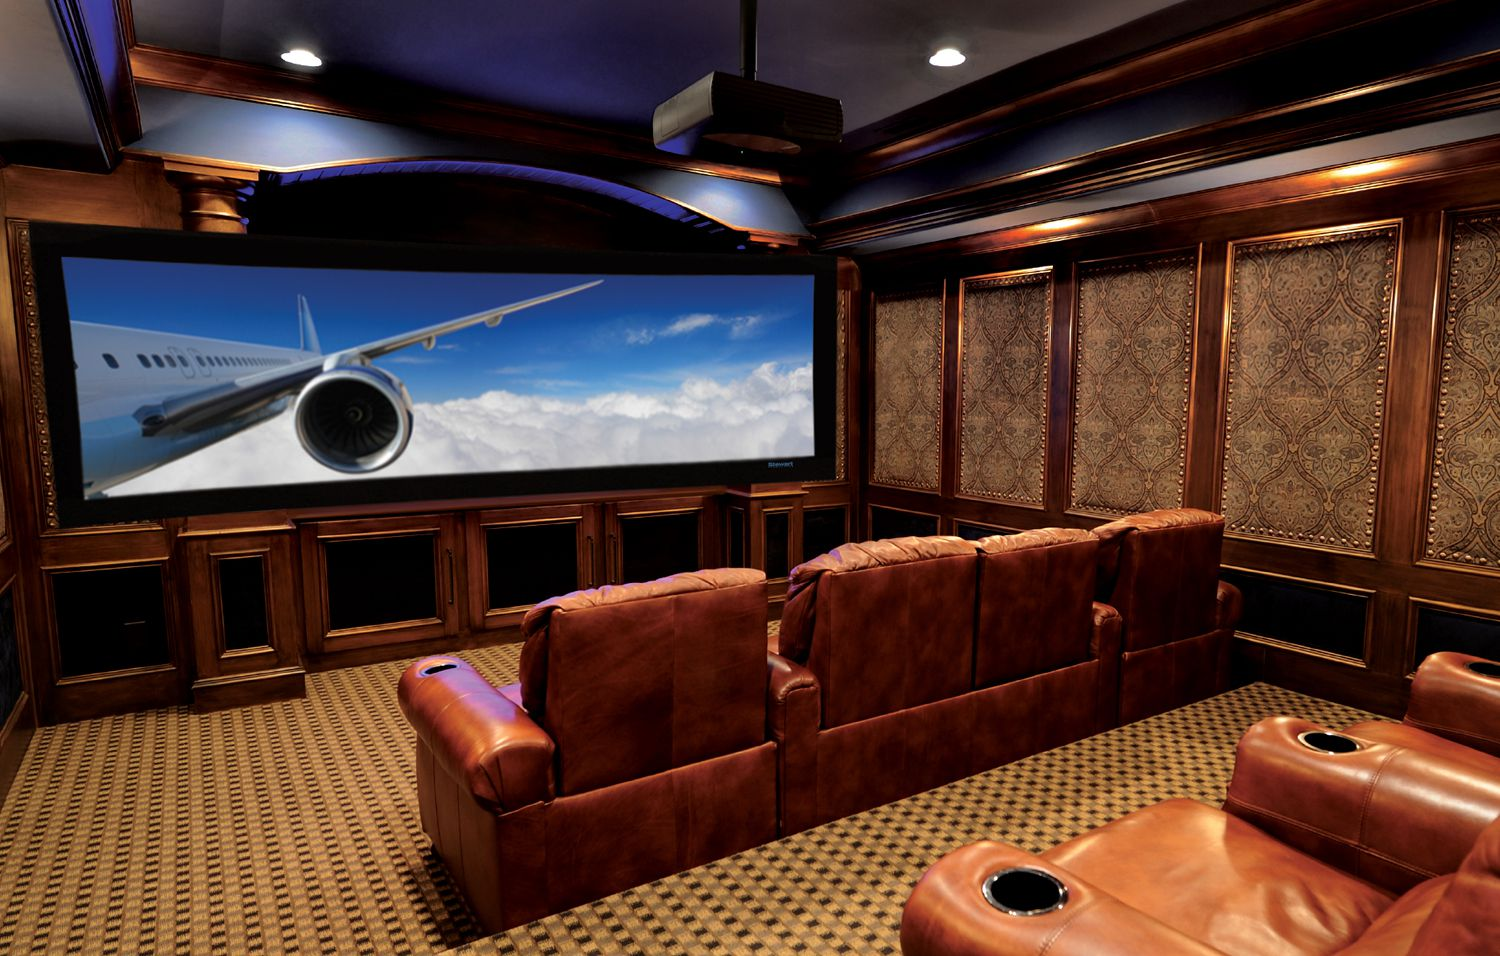 Adorable Design Of The Brown Floor Added With Brown Wall And Brown Leather Ideas As Movie Room Ideas